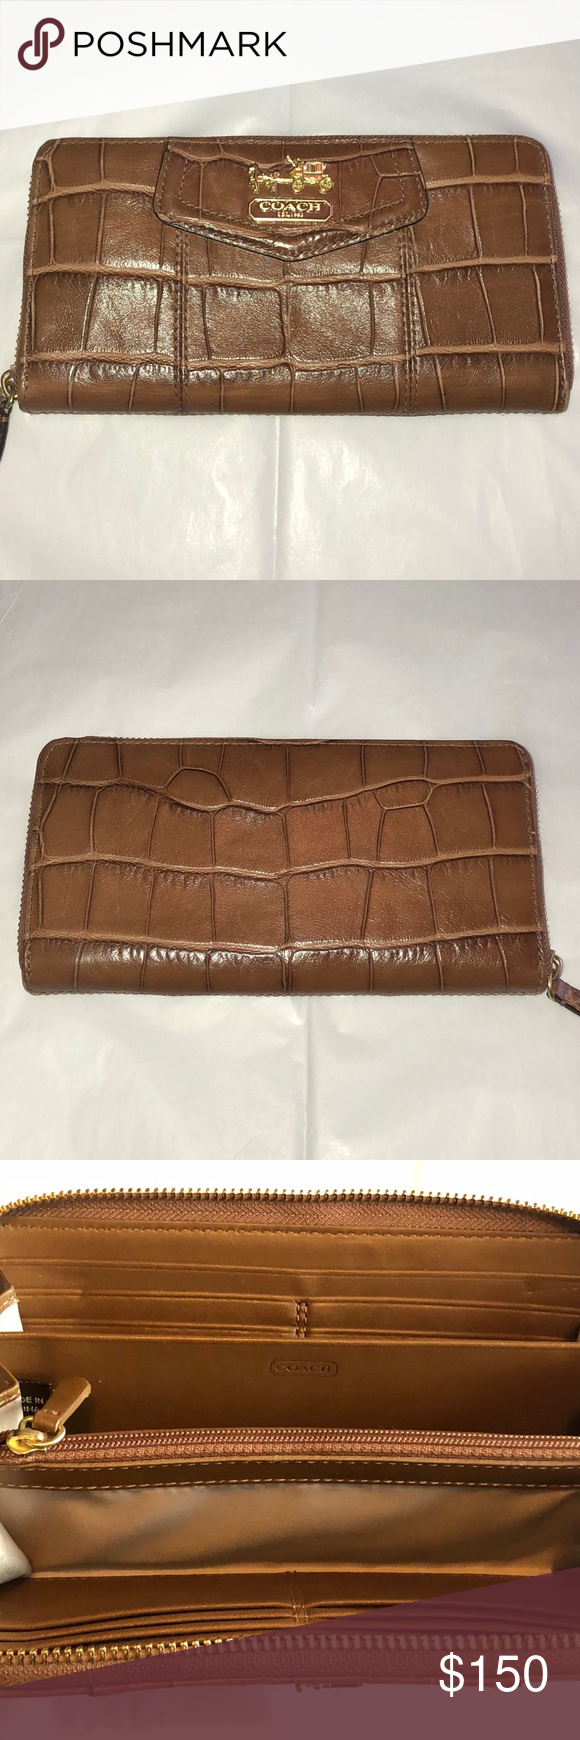 Coach Croc Embossed Leather Accordion Wallet Zip Coin Pouch Embossed Leather Wallet